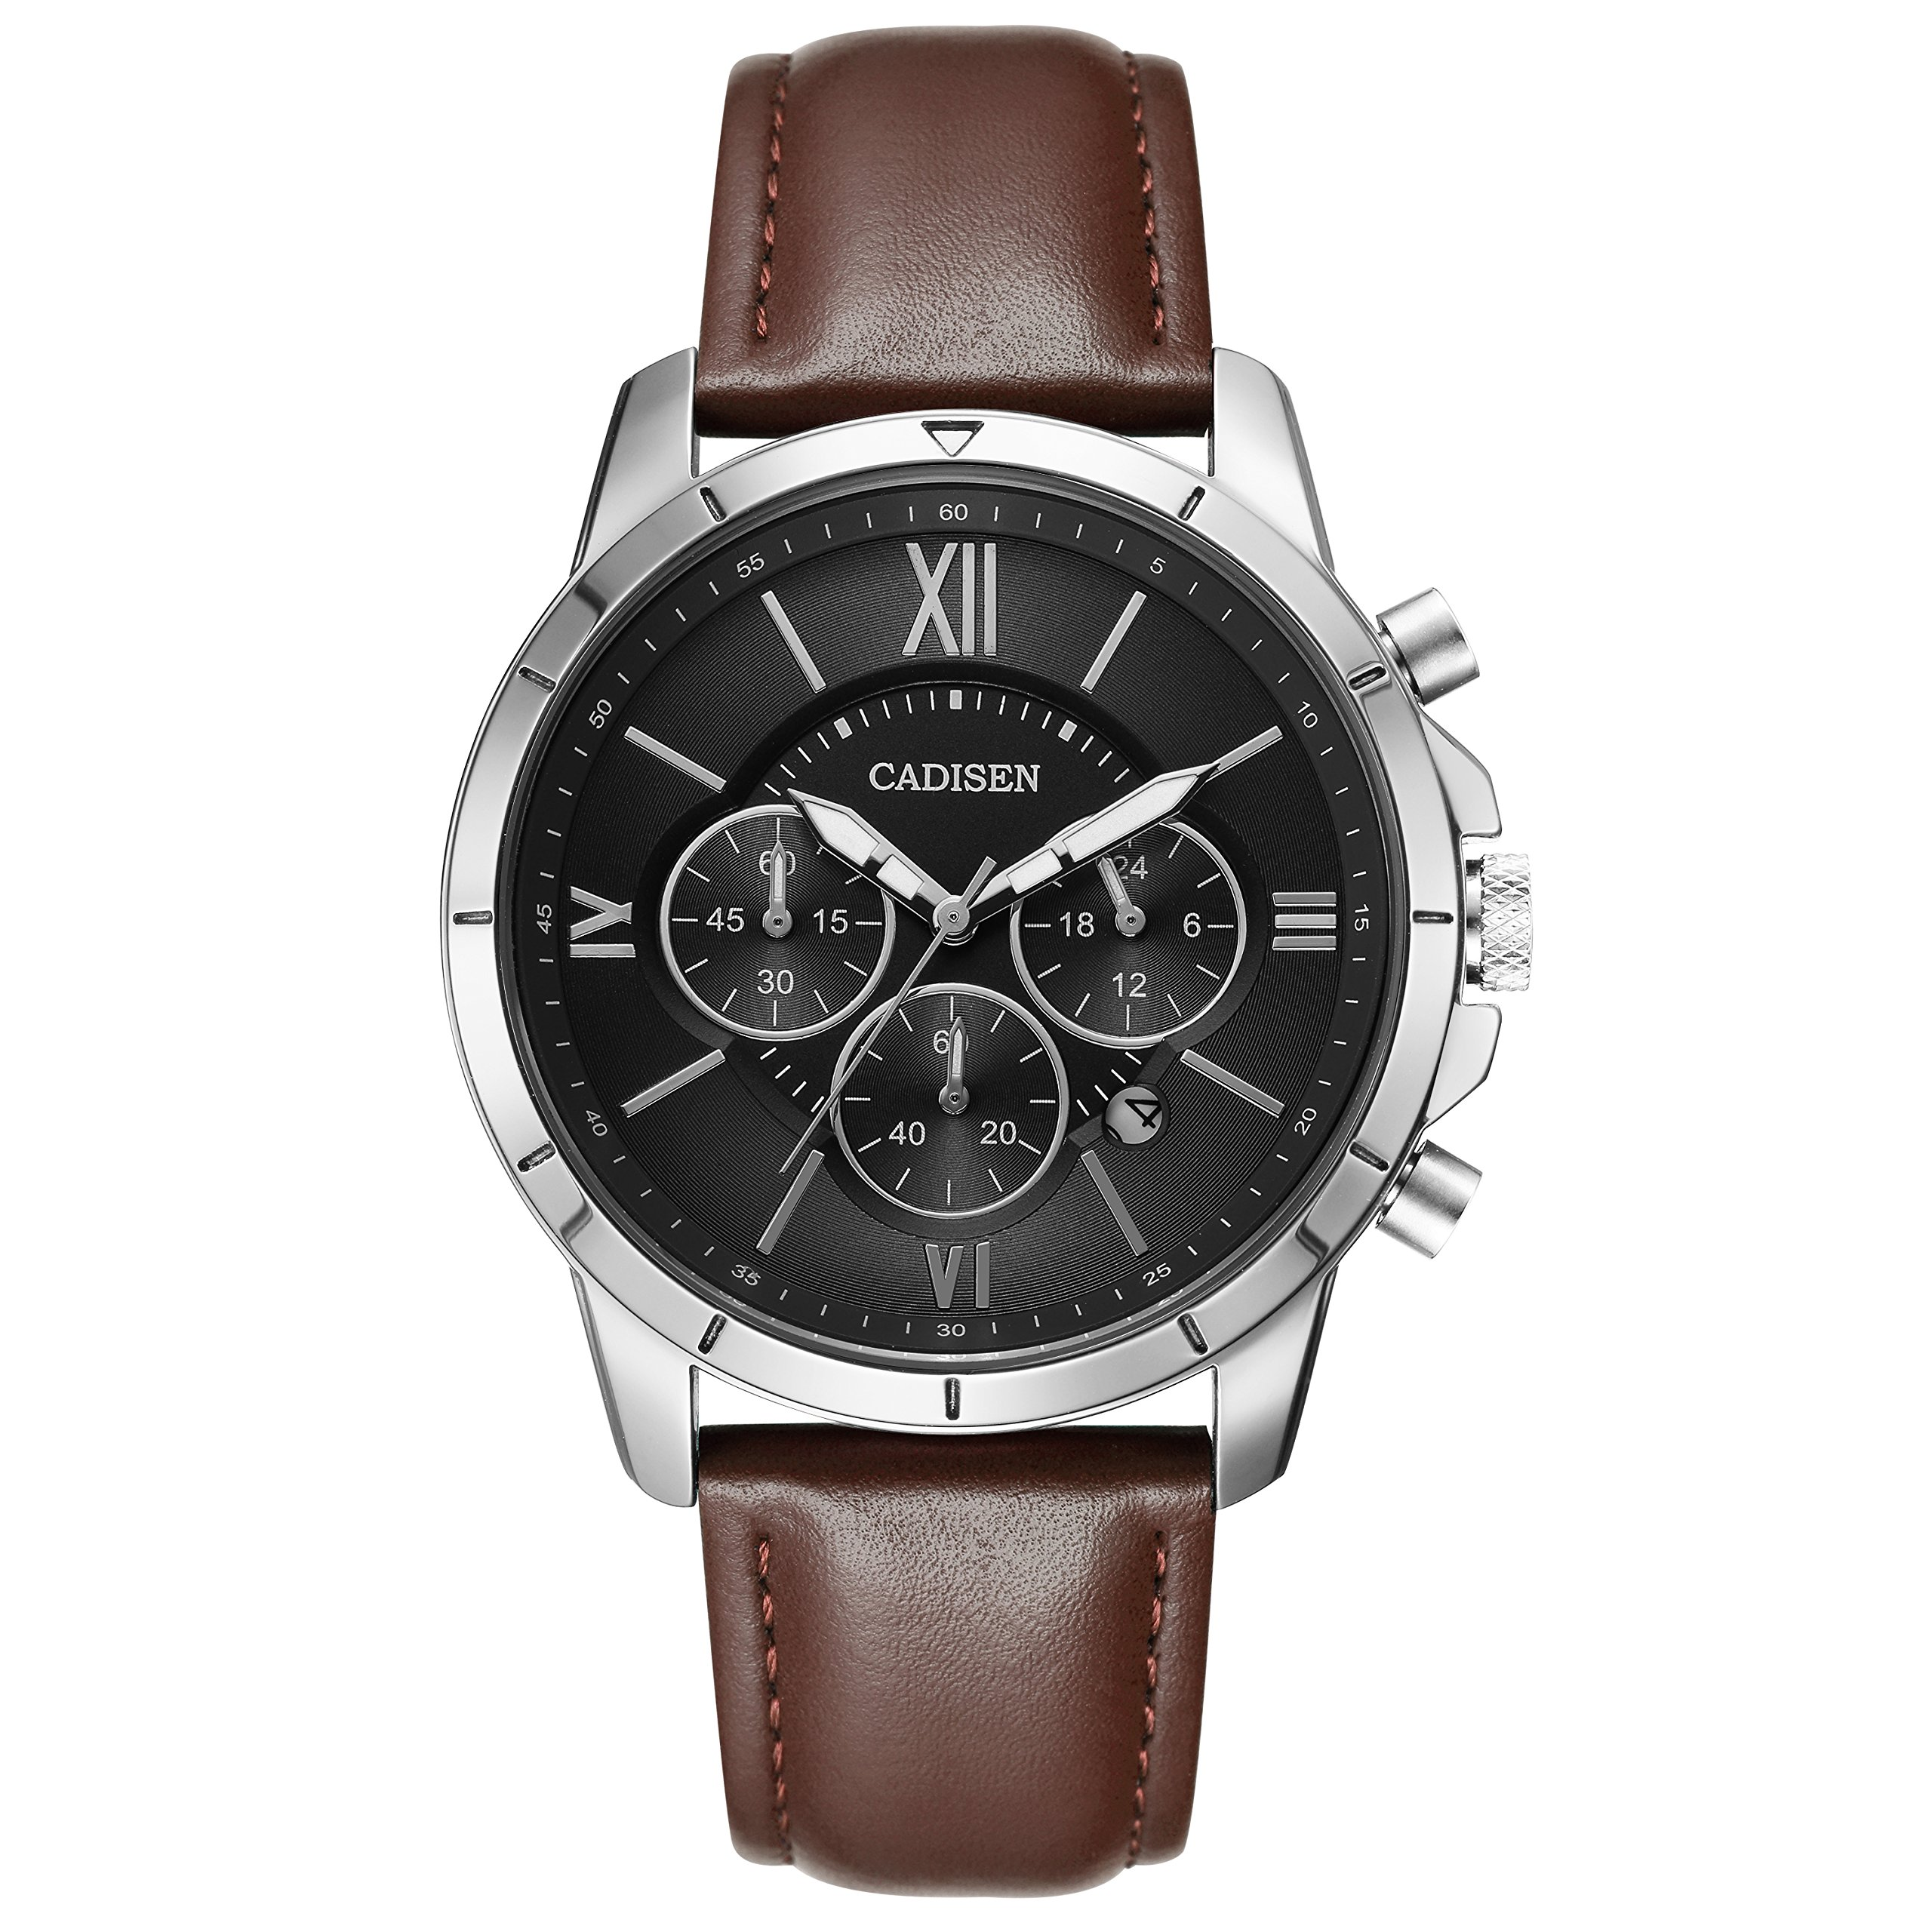 CADISEN Watch for Men Chronograph Calendar Waterproof Casual Business Brown Leather Watch by CADISEN